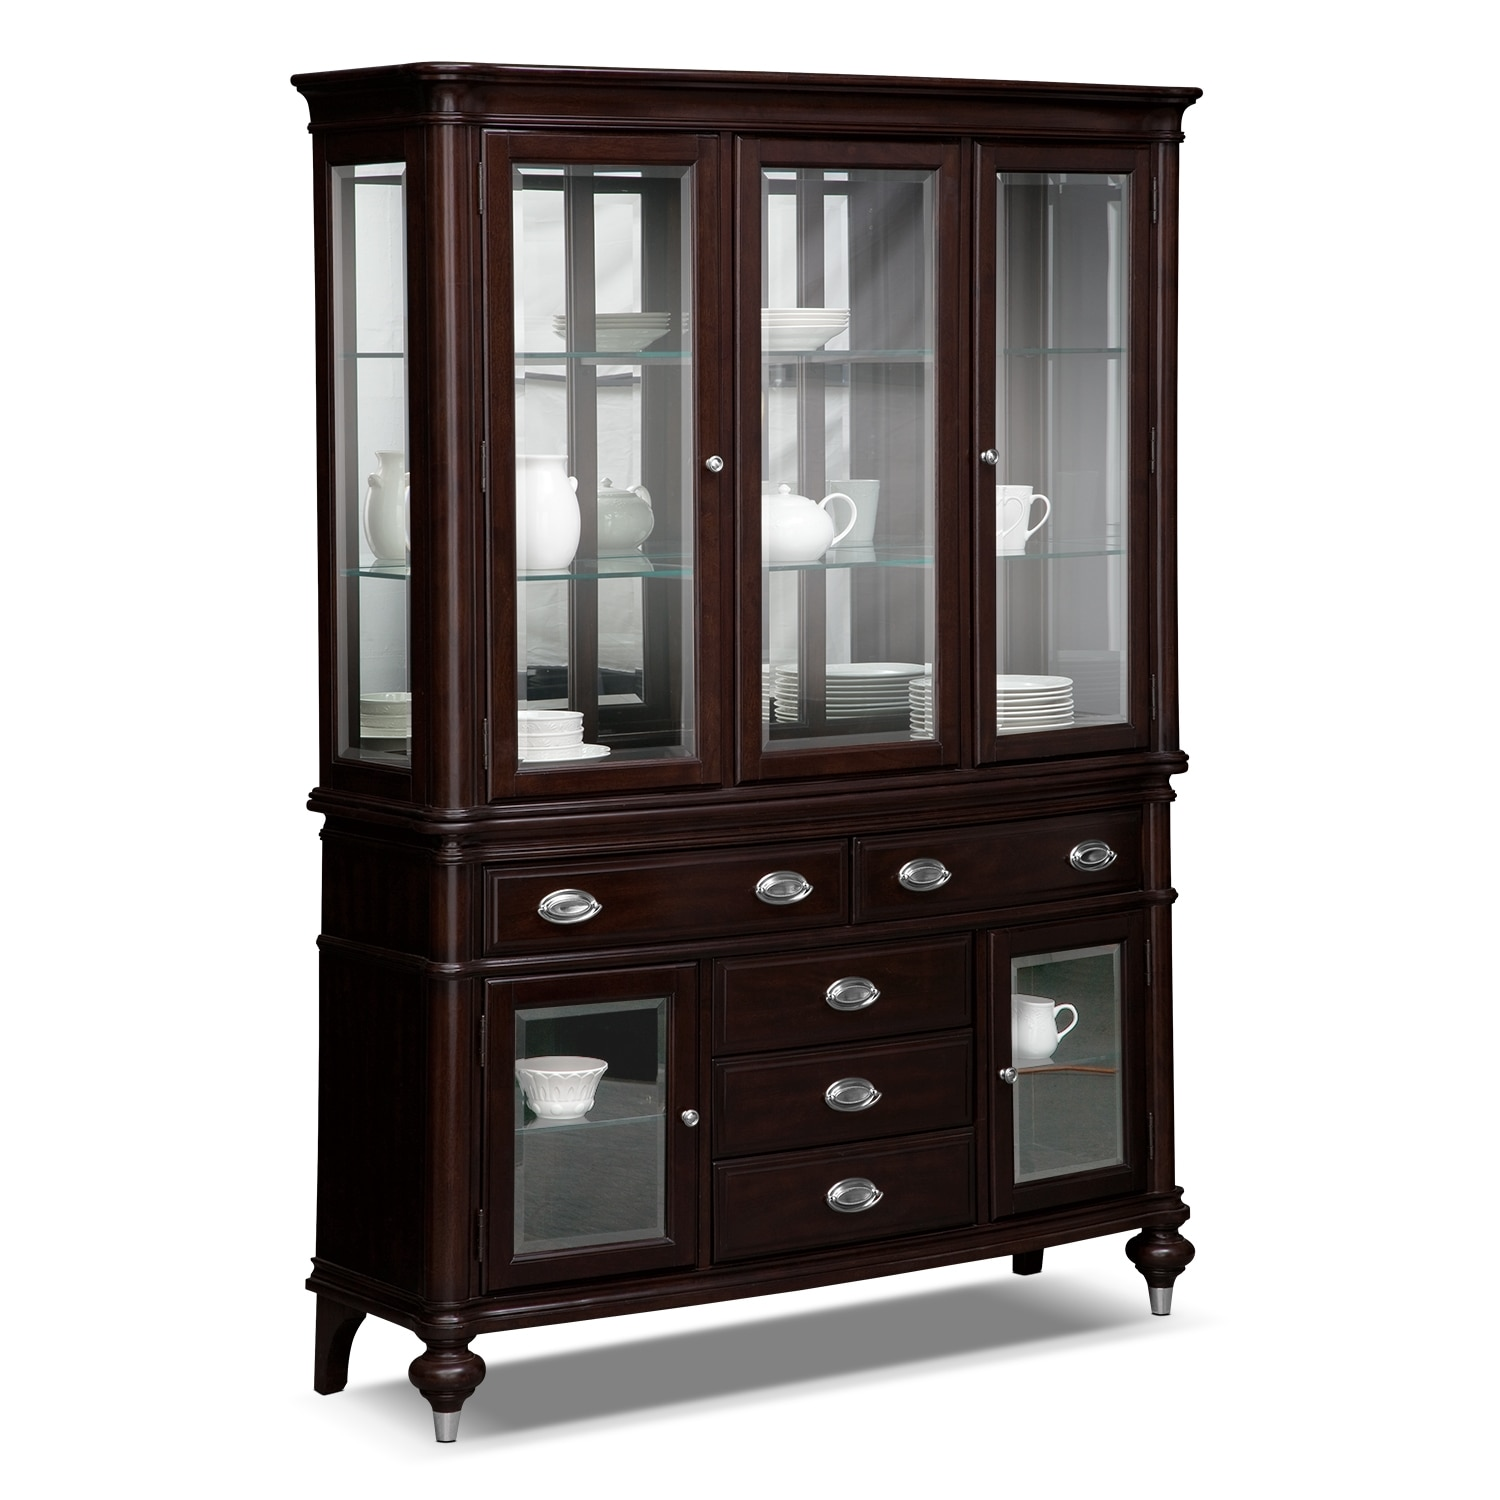 Esquire dining room buffet and hutch value city furniture for Dining room hutch